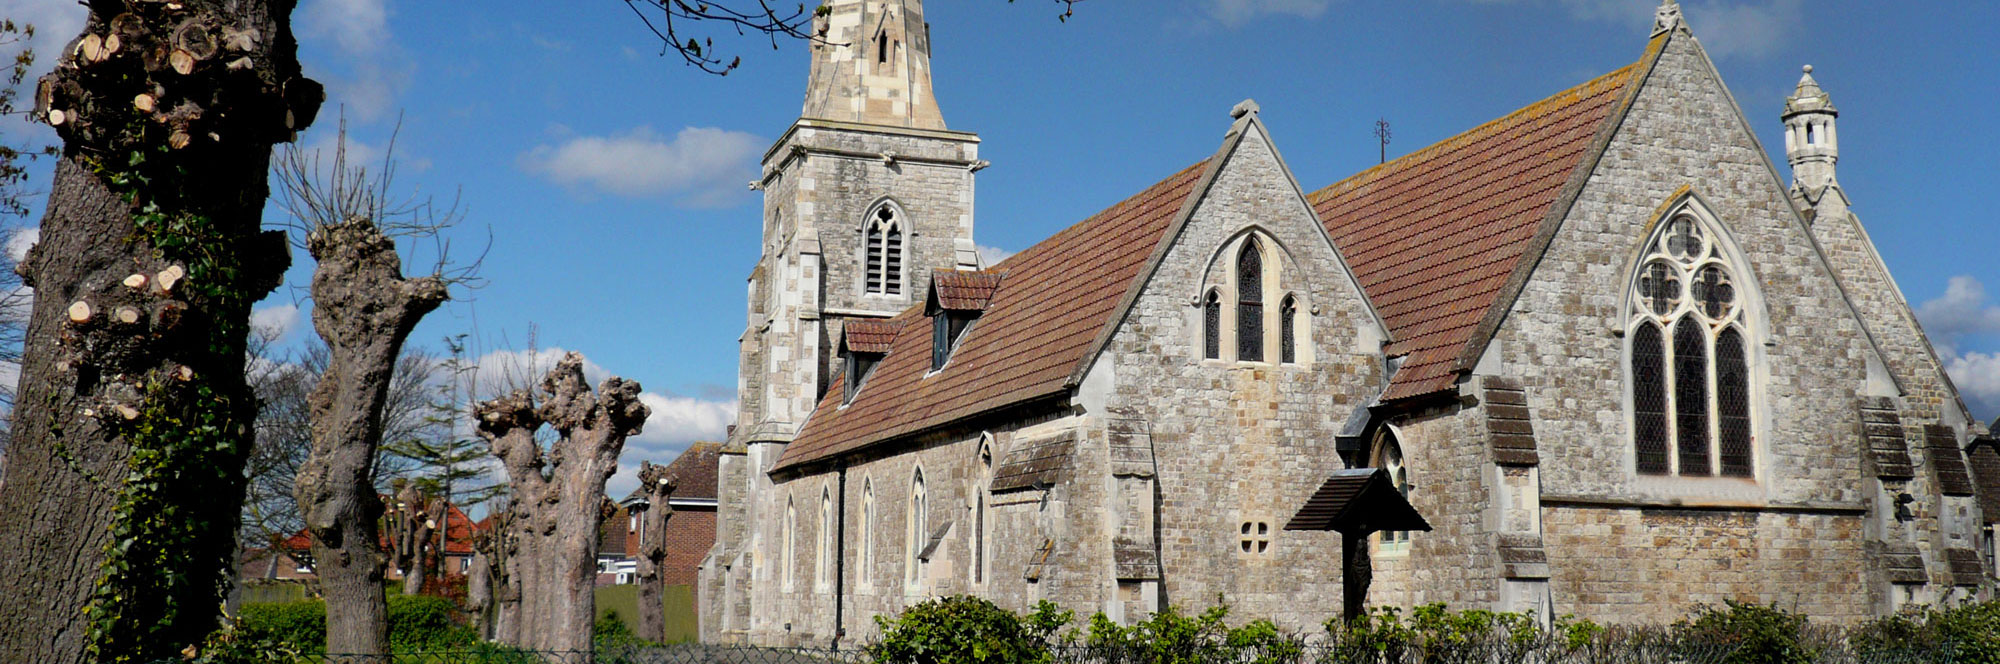 St Andrews Church Deal, kent